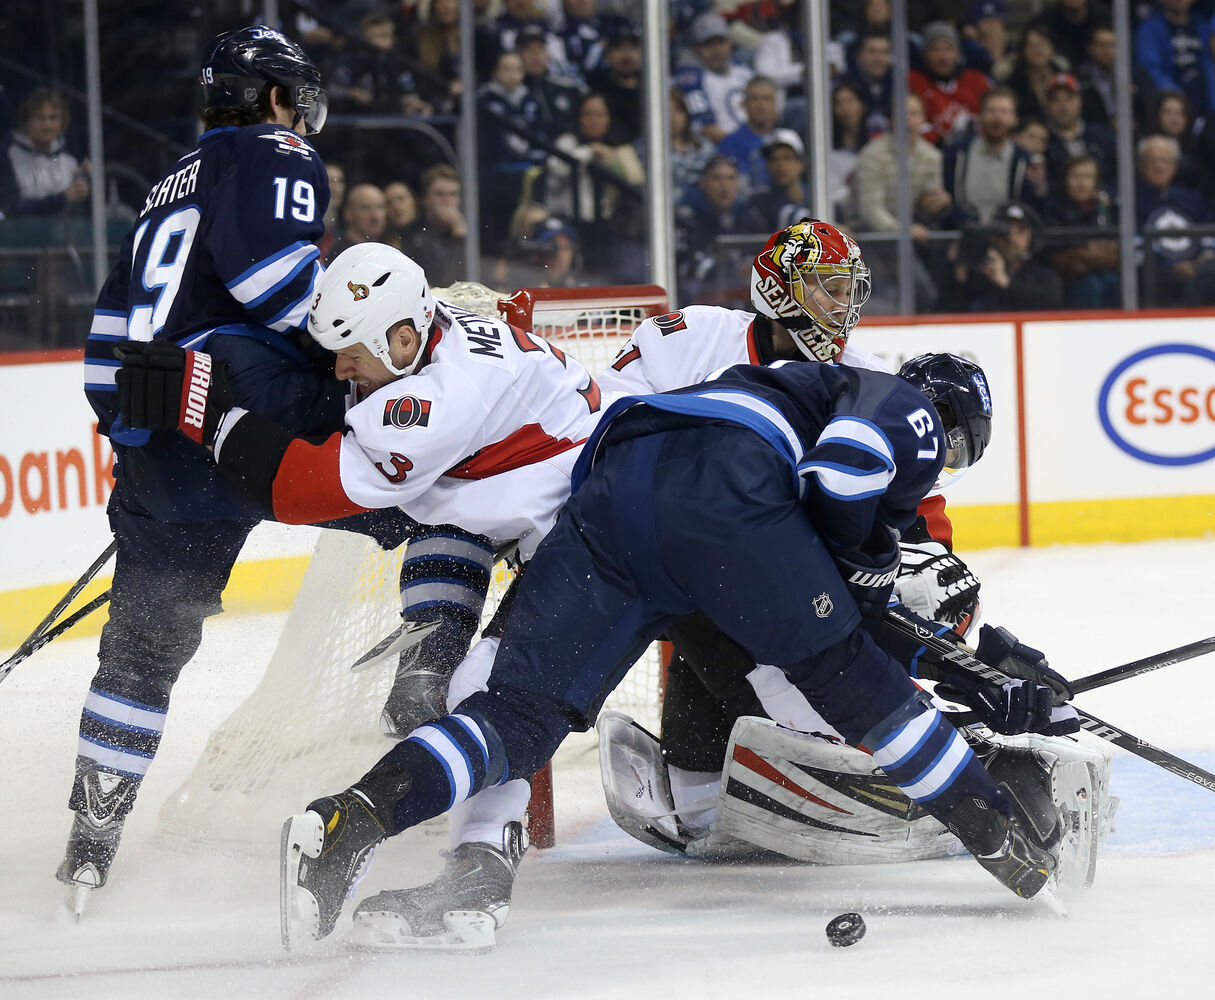 Winnipeg Jets' Jim Slater (19) and Michael Frolik (67) battle with Ottawa Senators' Marc Methot (3) in front of goaltender Craig Anderson (41) during second period NHL action.